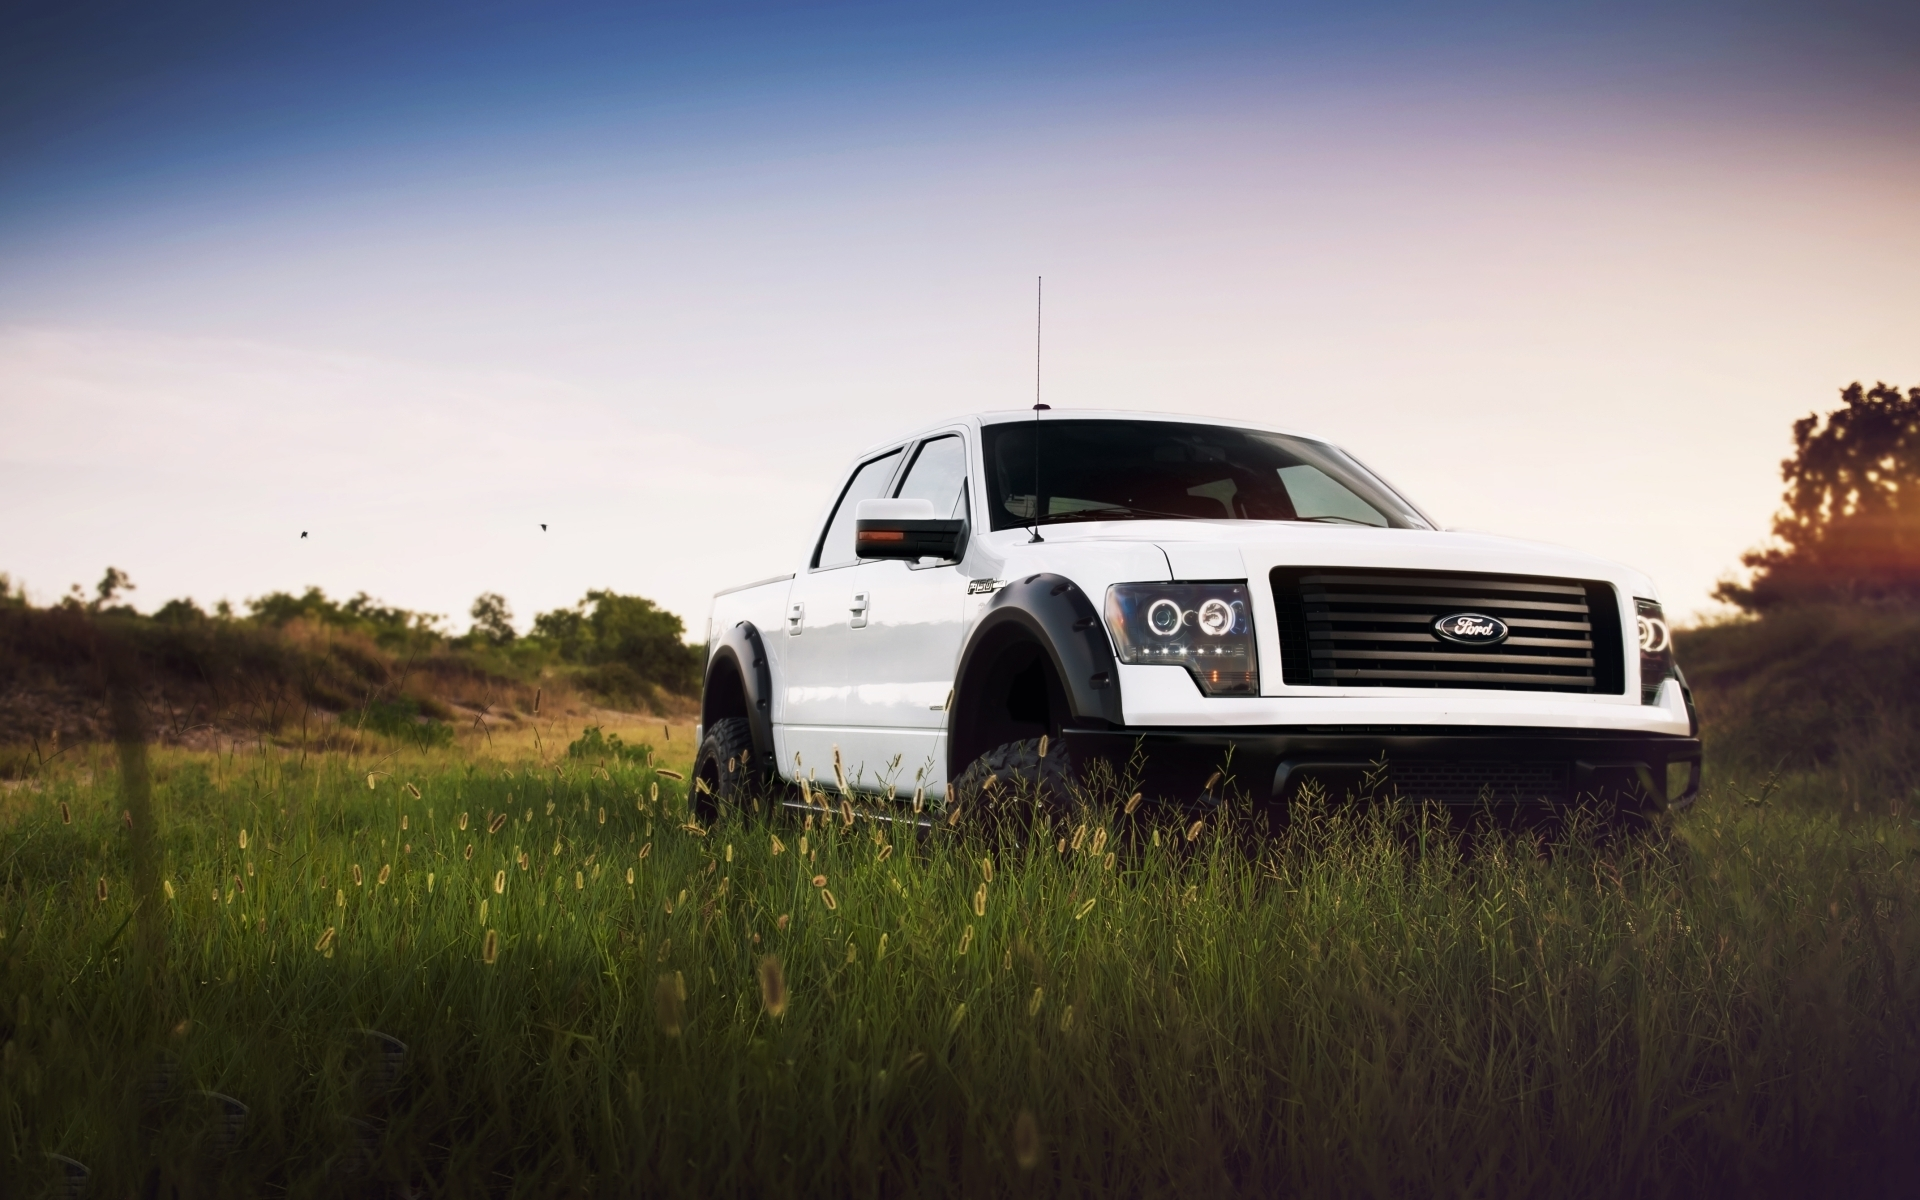 Ford F-150 Wallpapers, Pictures, Images